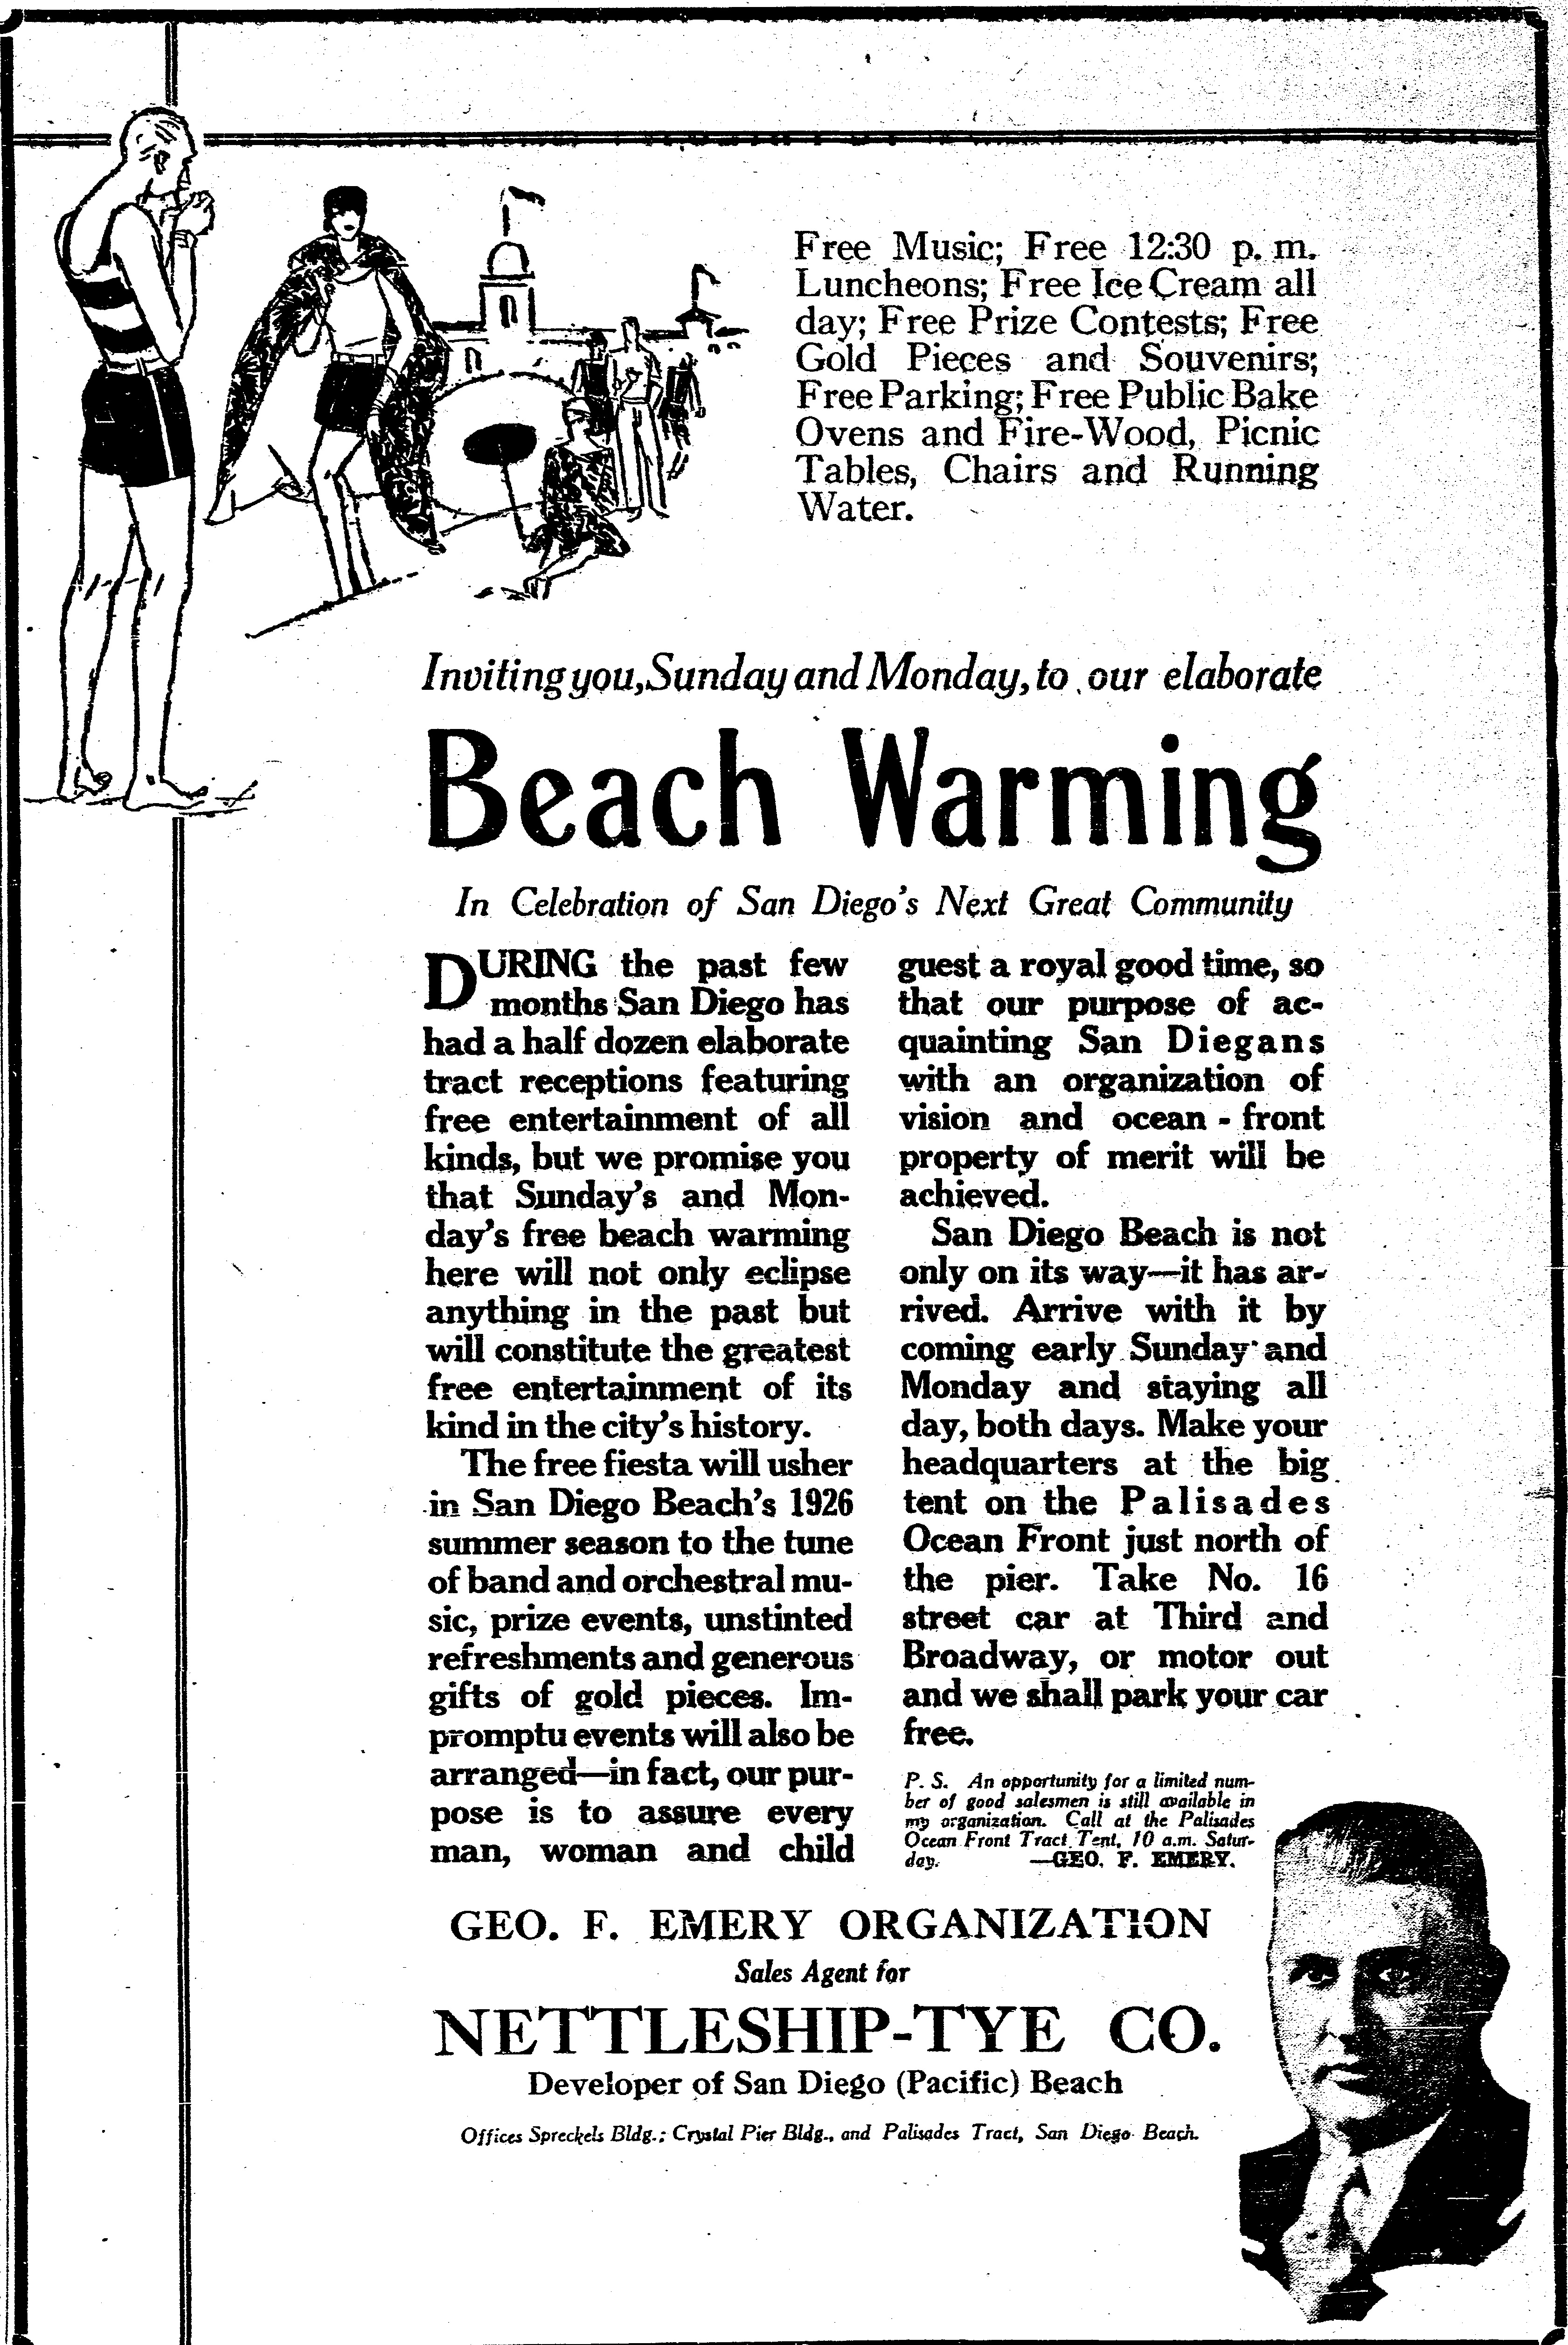 According to the Evening Tribune the first day of the beach warming was a great success George Emery was quoted as saying that the sale of Palisades Ocean